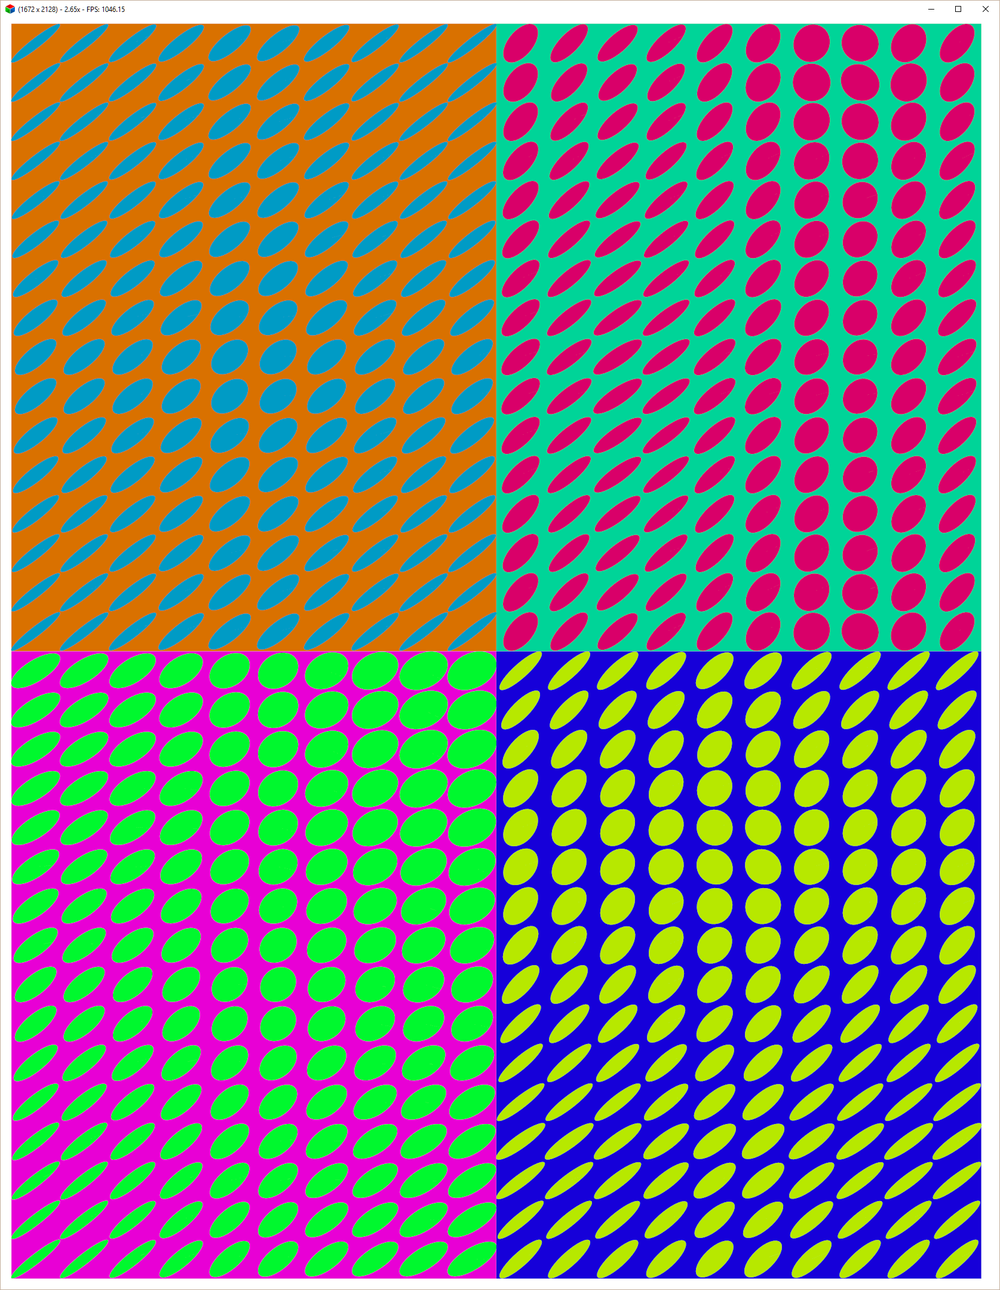 gs_vasarely.png